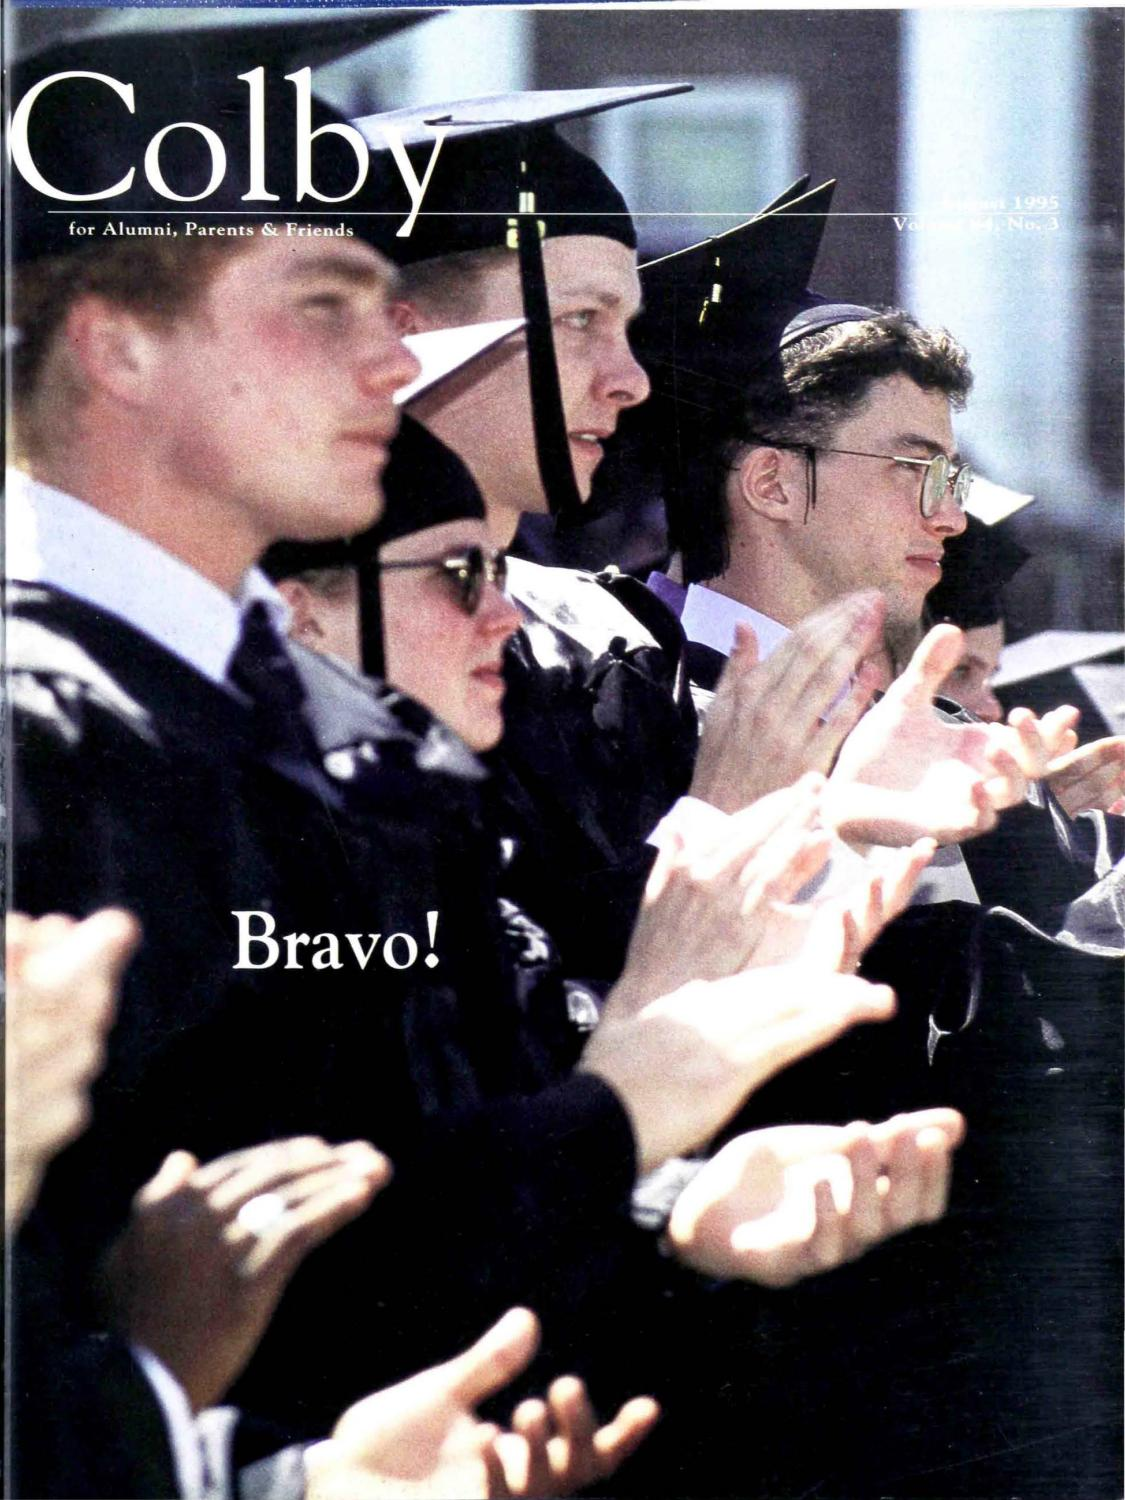 Colby Magazine vol. 84, no. 3 by Colby College Libraries - issuu